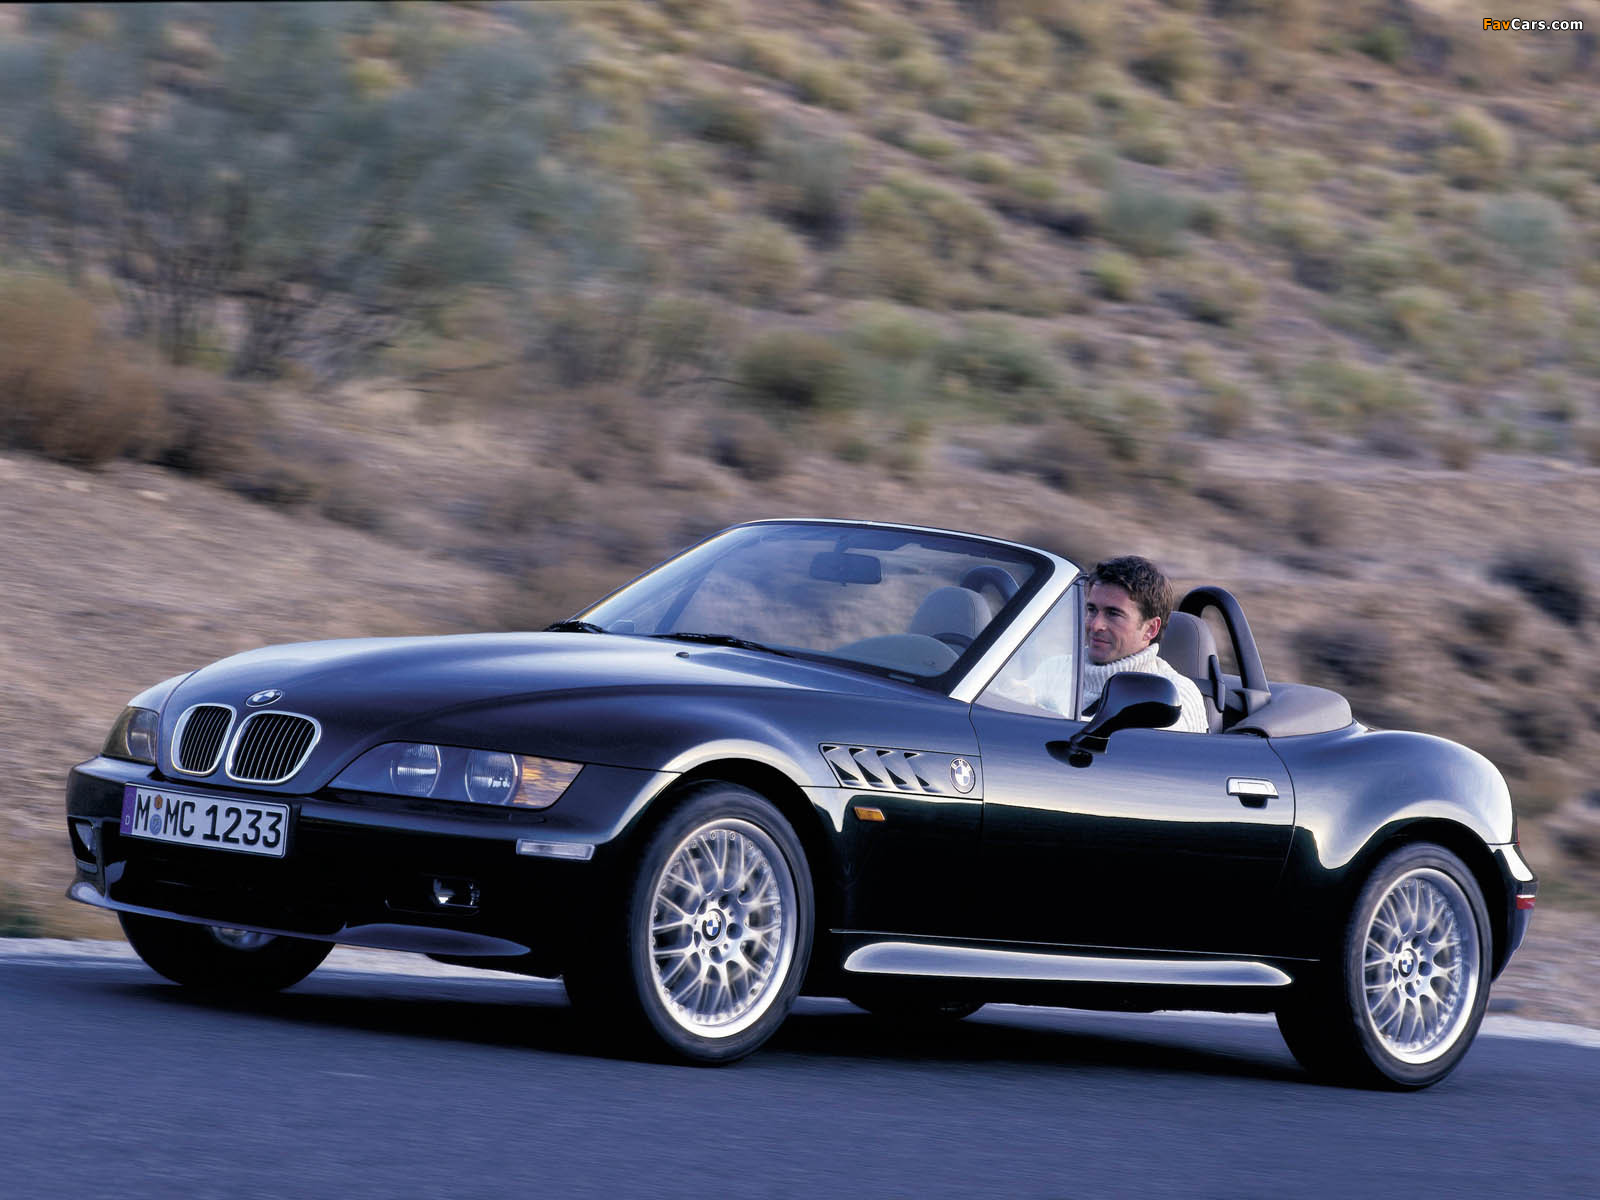 Bmw Z3 2 8 Roadster E36 7 1997 2000 Images 1600x1200